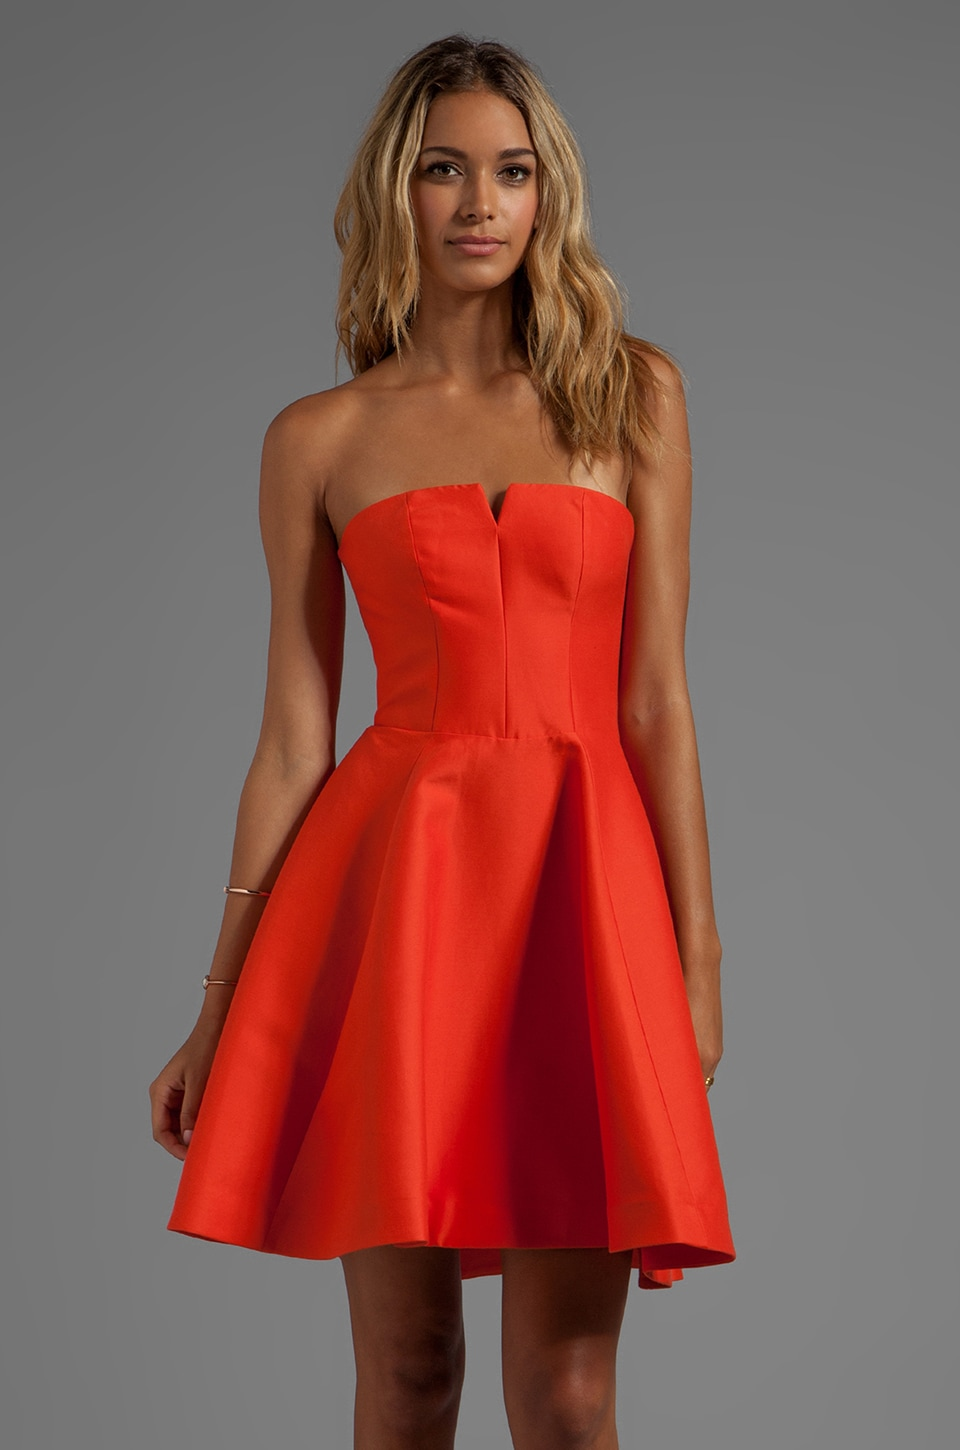 Halston Heritage Strapless Structured Dress With Flare Skirt in Fire